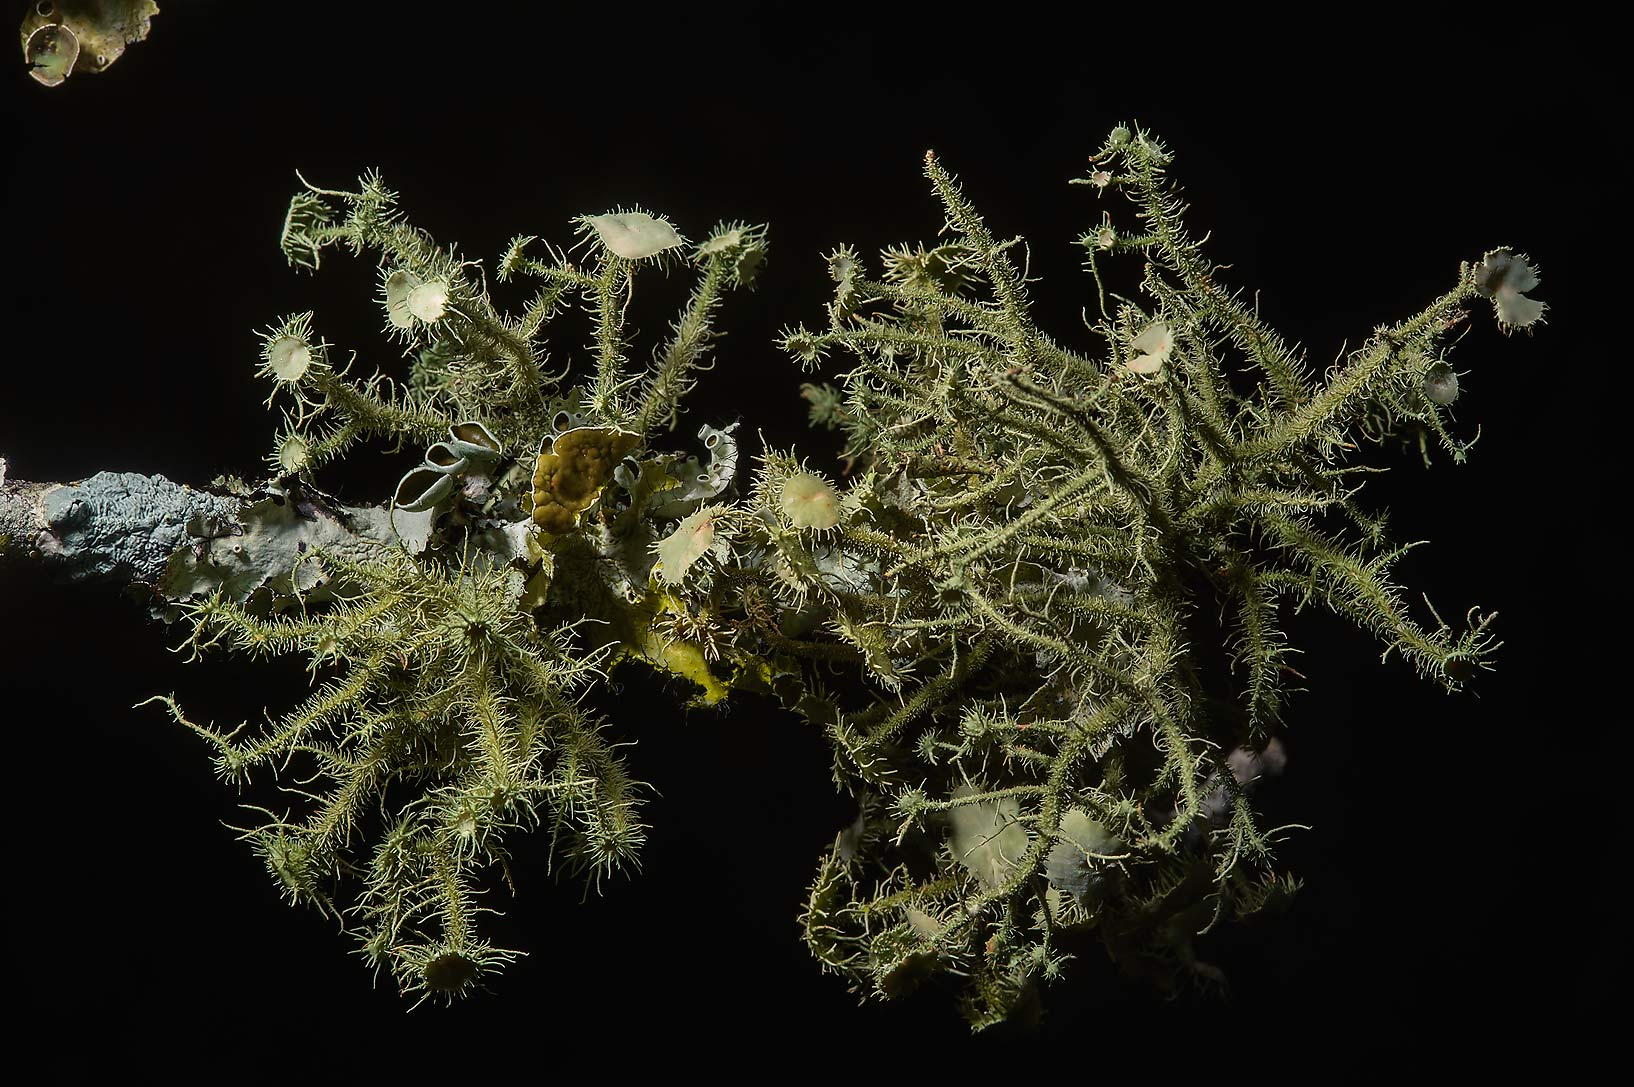 Beard lichen (Usnea cirrosa) on a downed limb in Lick Creek Park. College Station, Texas